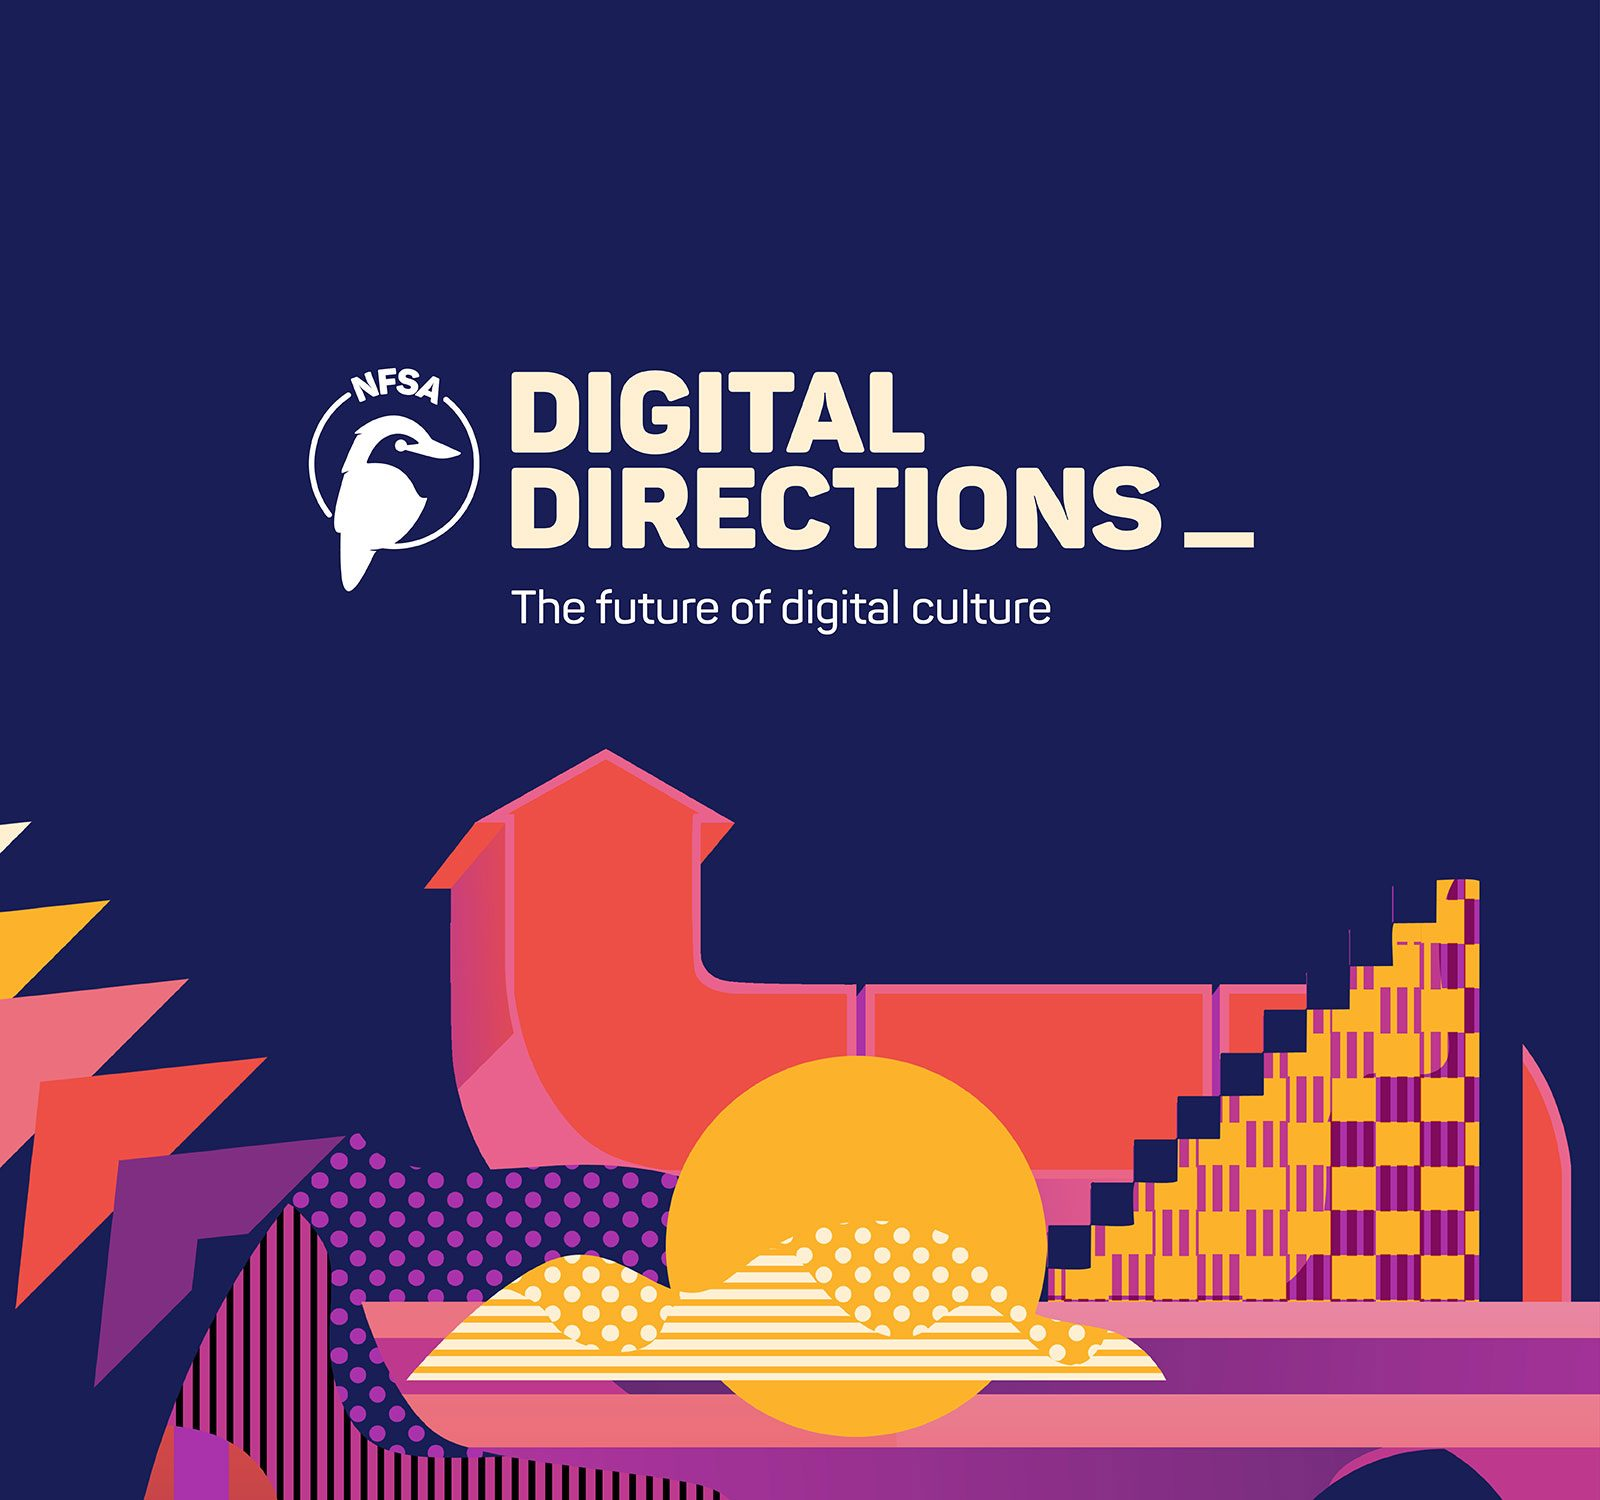 Digital Directions. Image: National Film and Sound Archive